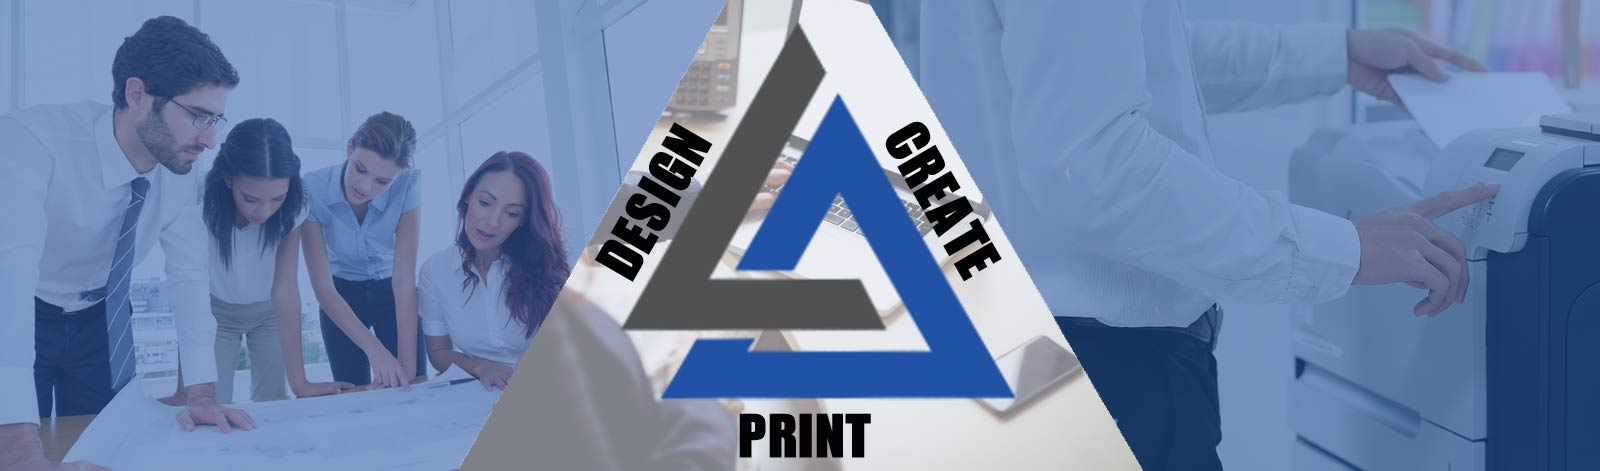 Label Printing Shipping Label Outfitters